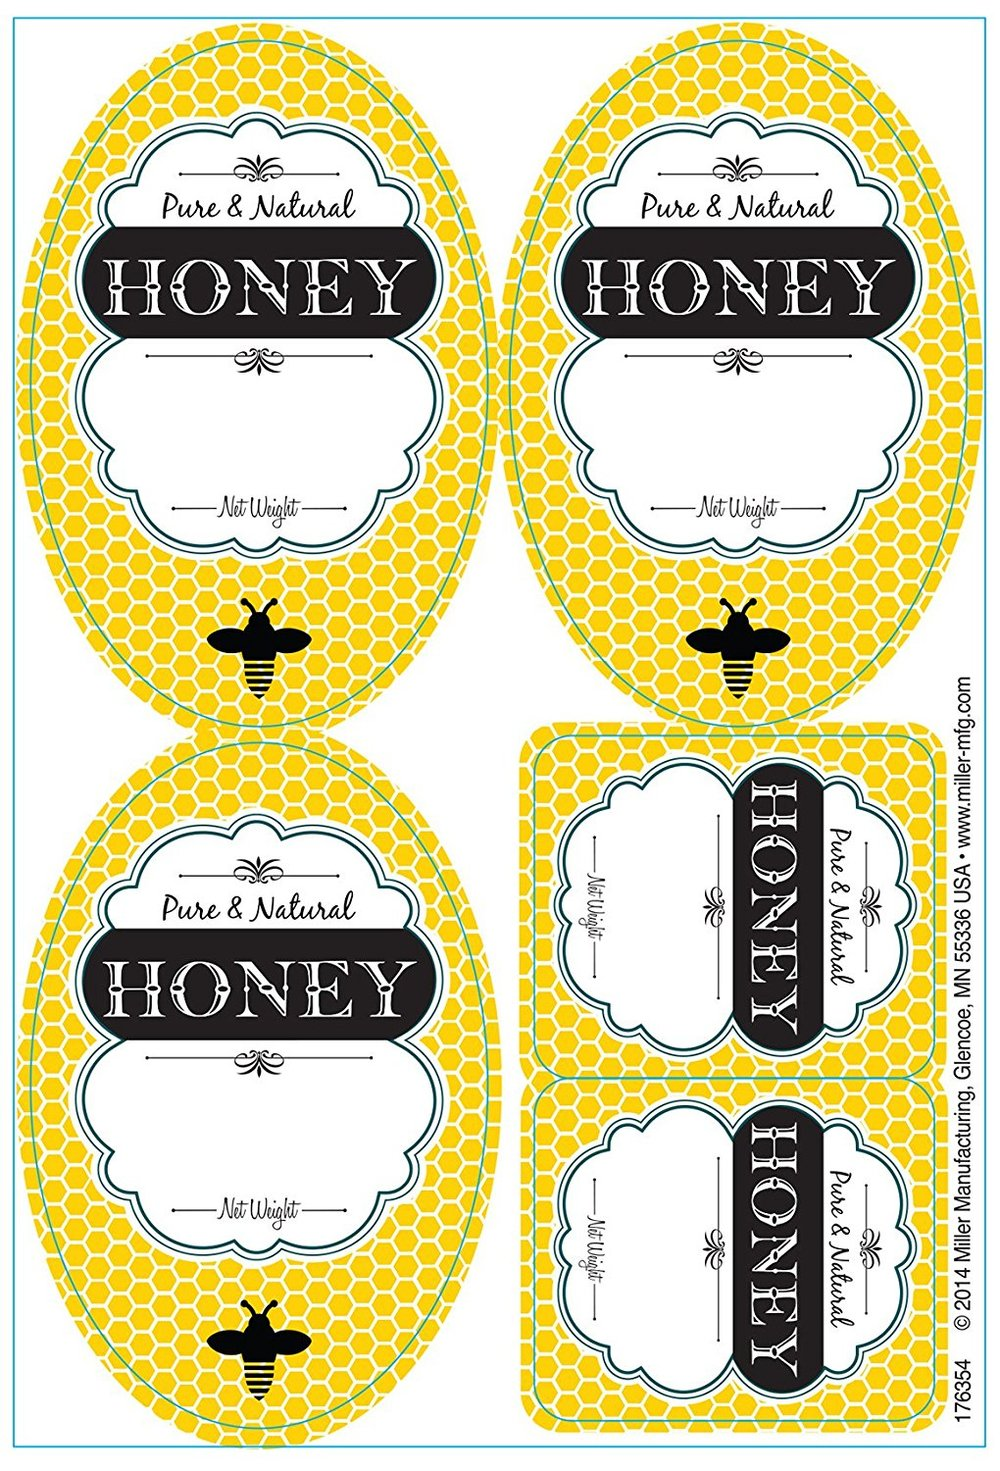 Little Giant Honey Jar Labels.jpg